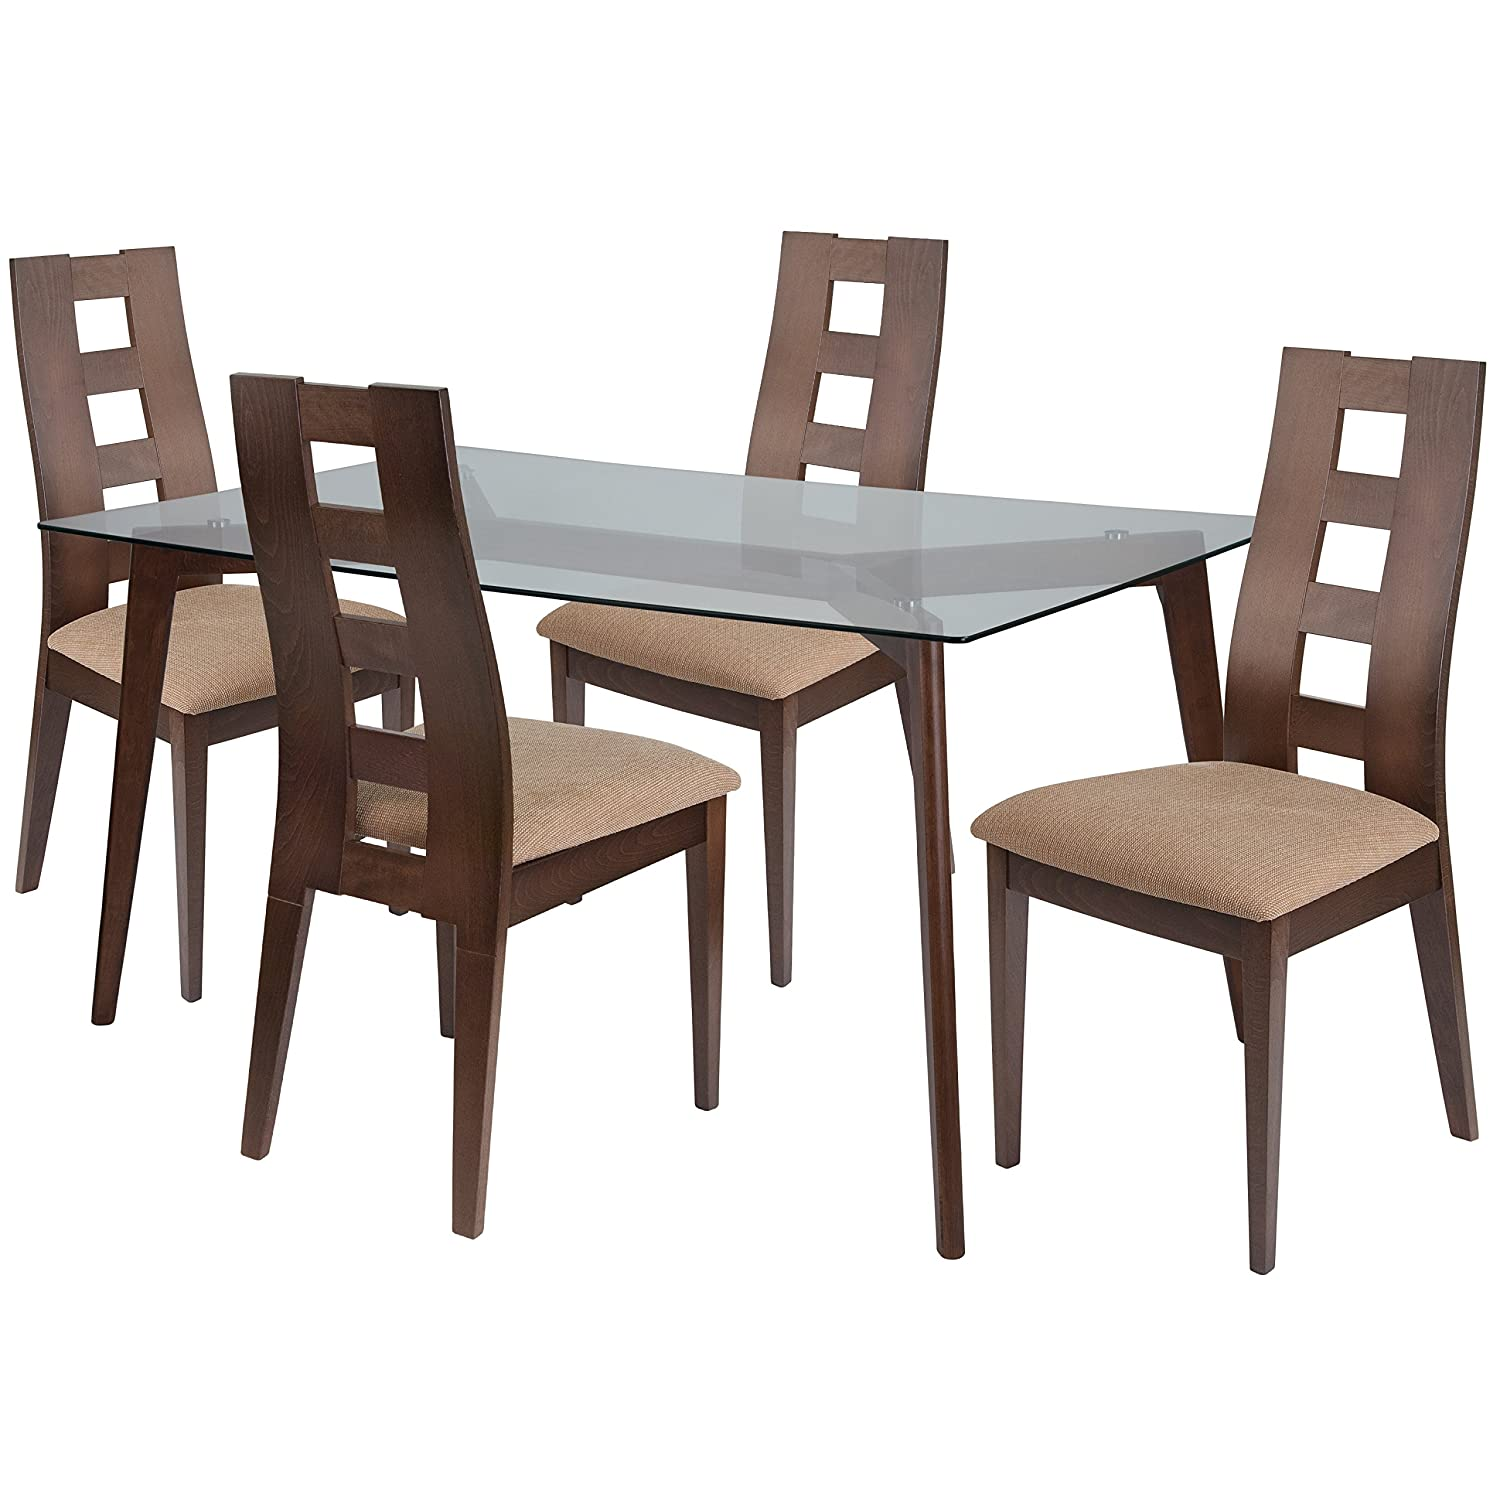 Amazon com flash furniture ross 5 piece walnut wood dining table set with glass top and window pane back wood dining chairs padded seats